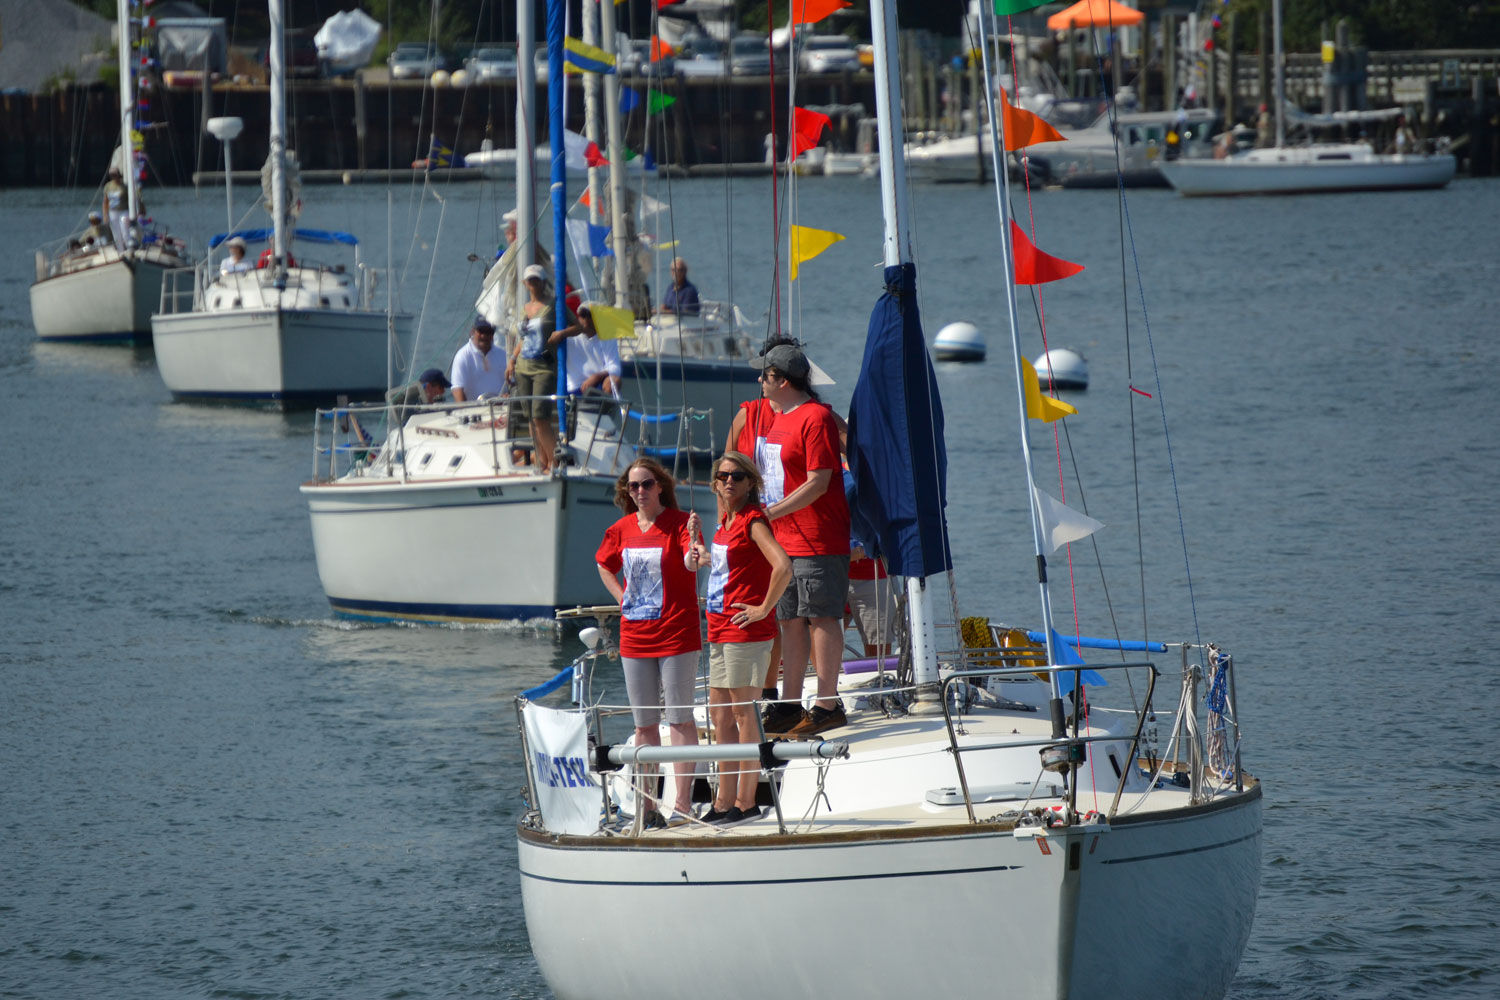 Tenth Annual Village Cup Regatta Sets Sail Saturday, September 7